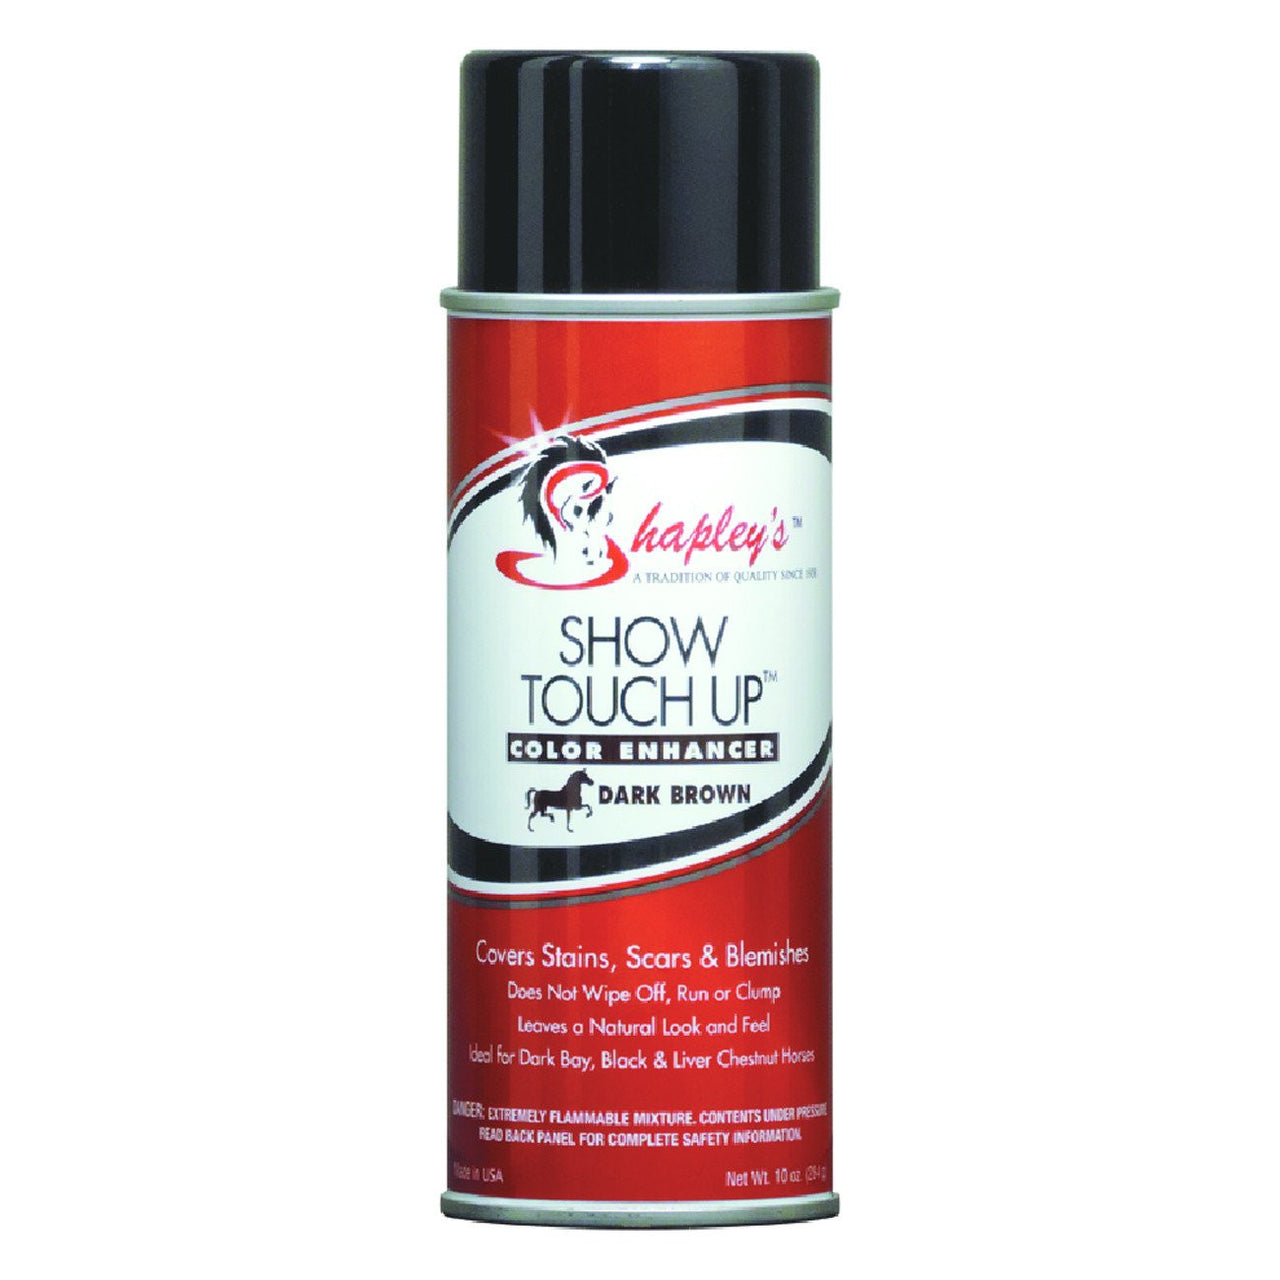 Shapleys Show Touch Up 295Ml Aerosol Spray Dark Brown - Equine Care Shapleys - Canada